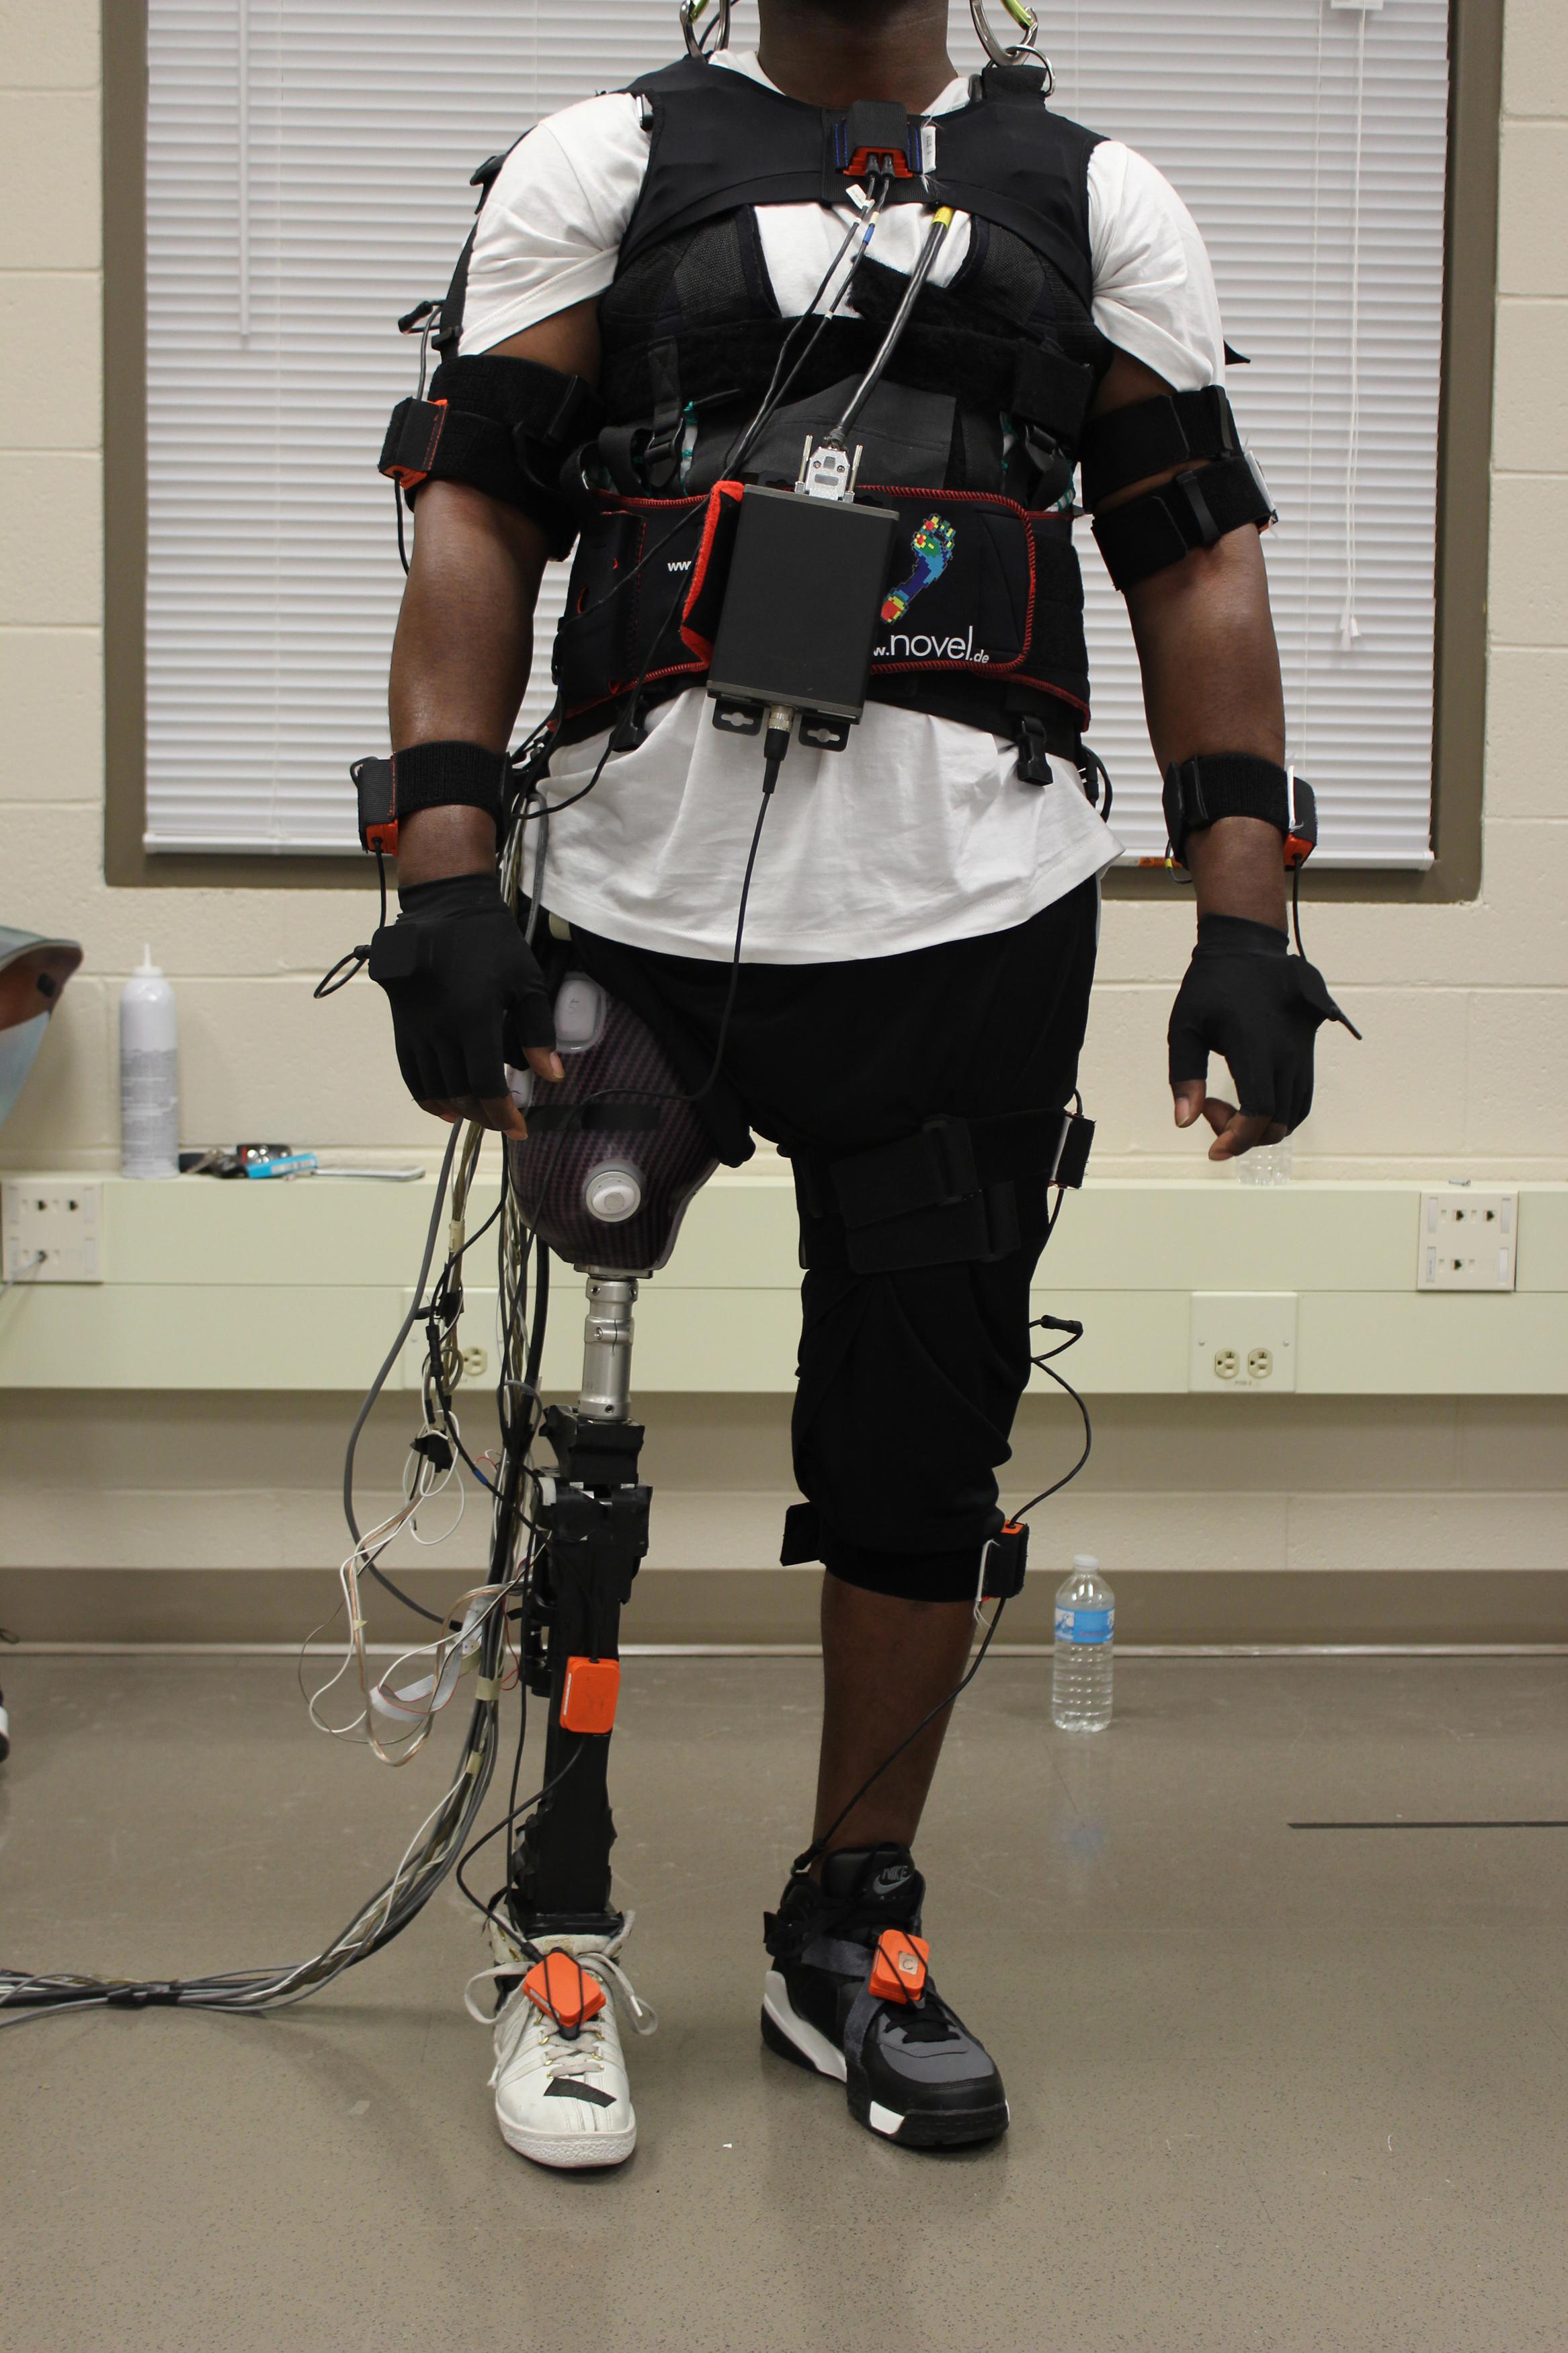 Researchers Study Impact Of Power Prosthetic Failures On